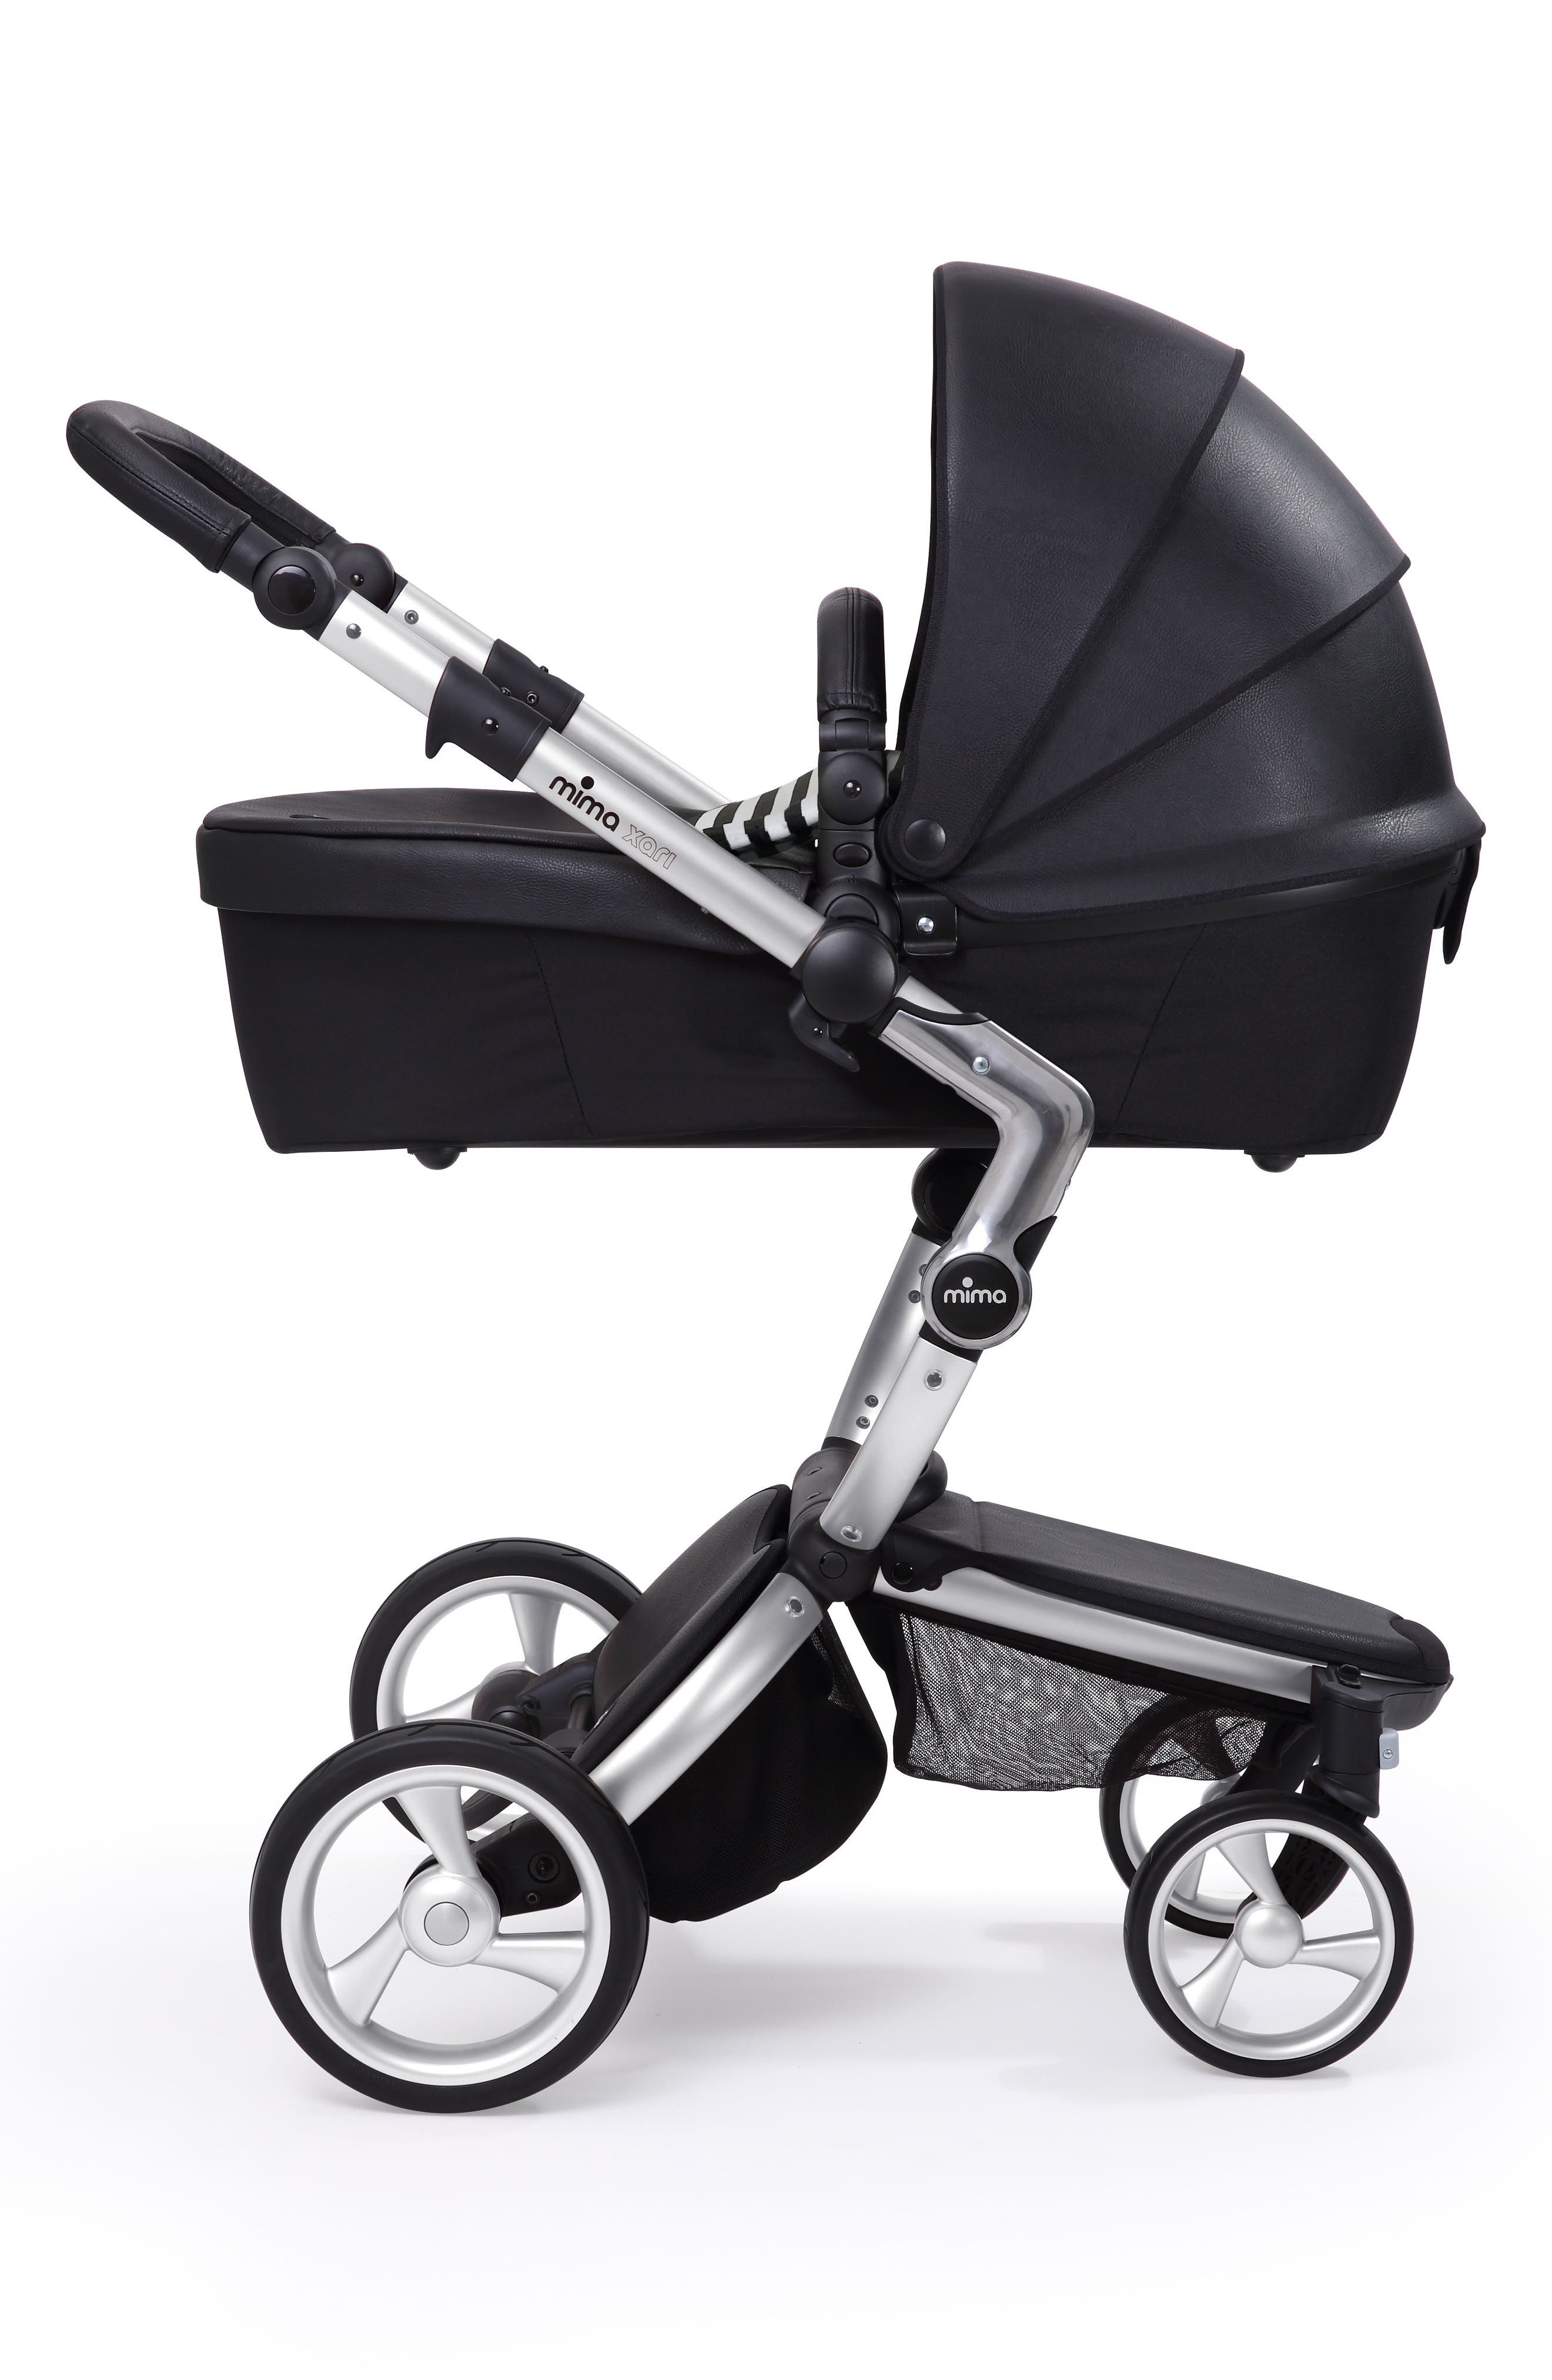 Xari Aluminum Chassis Stroller with Reversible Reclining Seat & Carrycot,                             Alternate thumbnail 7, color,                             Black / Black And White